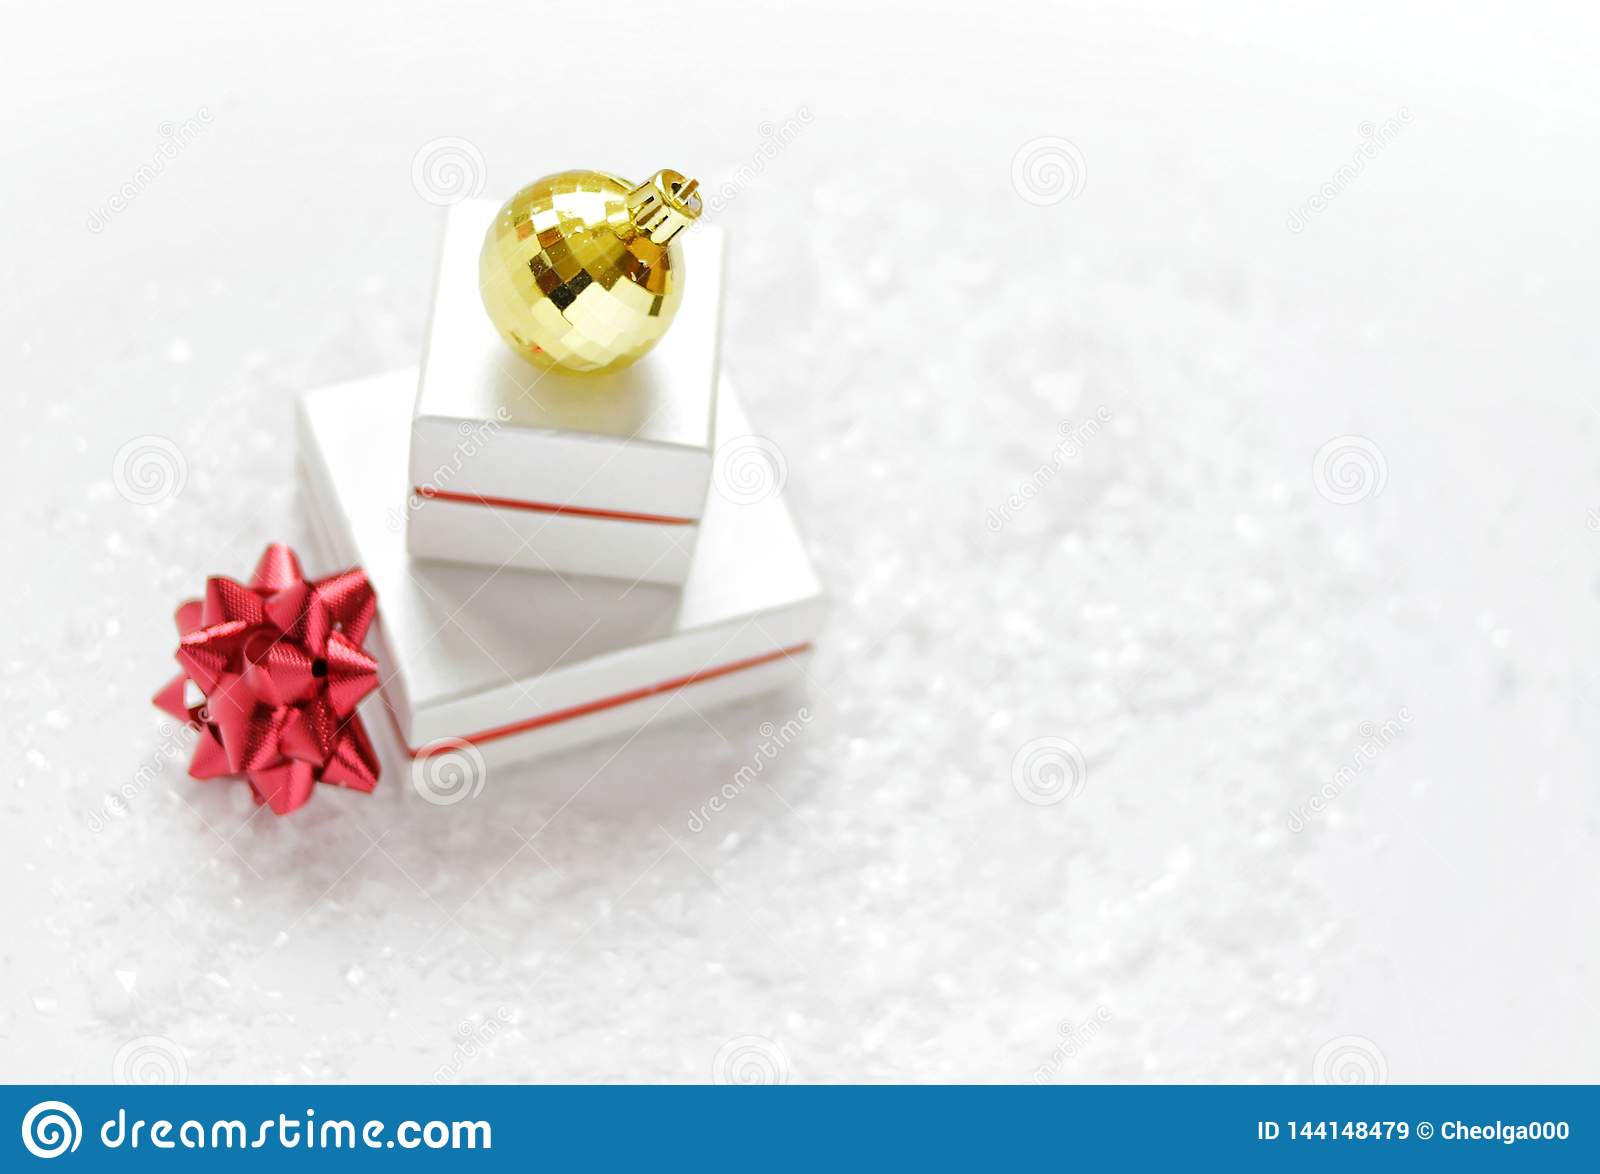 Christmas card. Christmas gift boxes with a red bow, golden Christmas ball, on a white background with snow